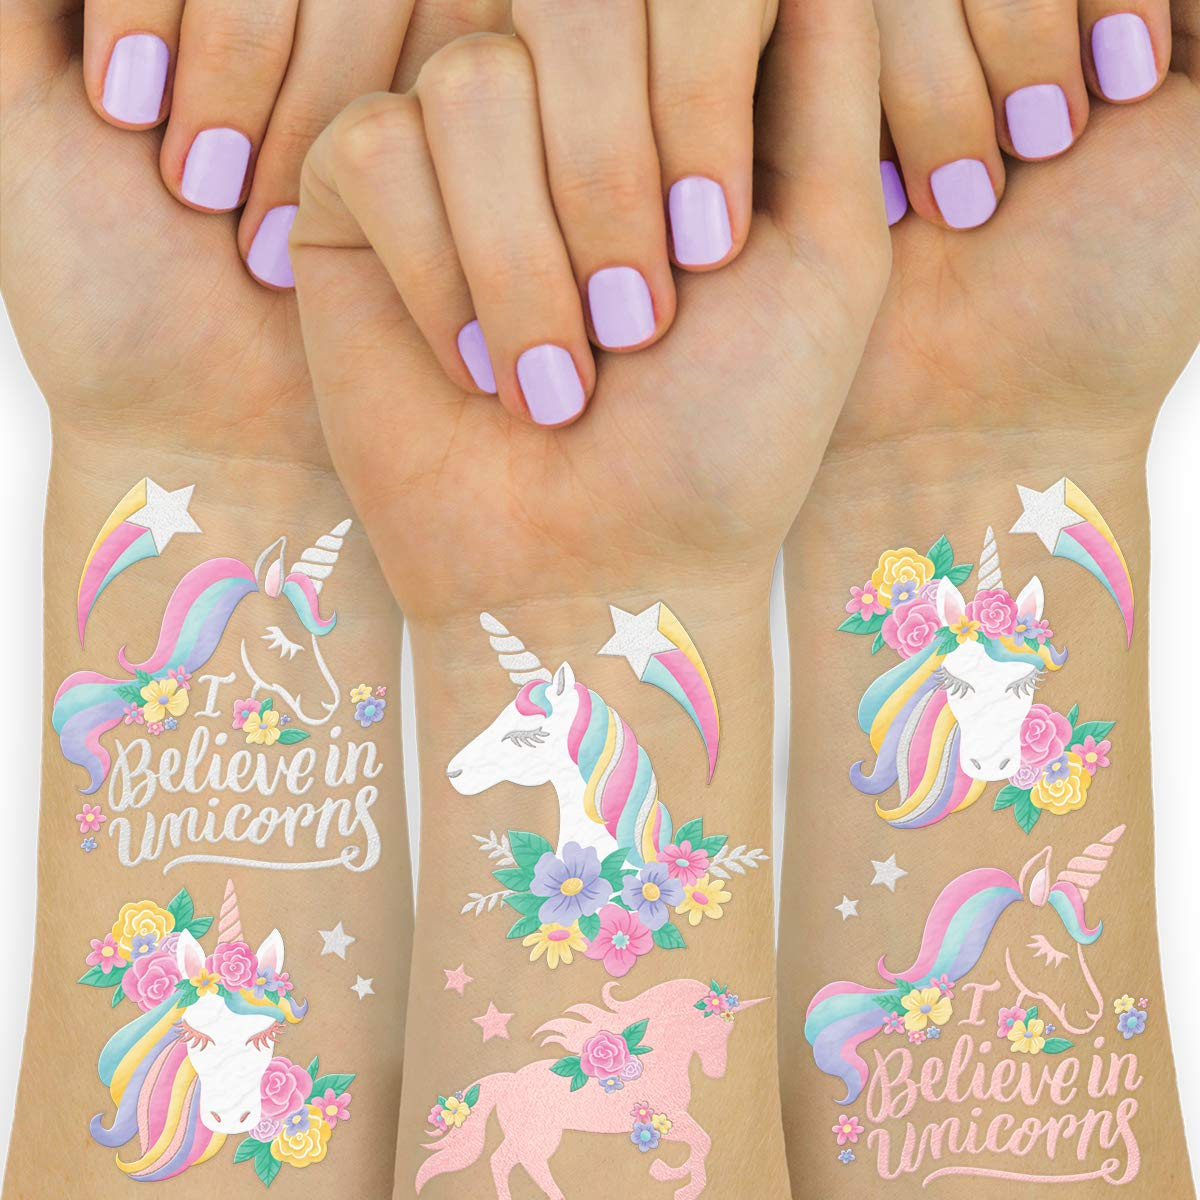 xo, Fetti Unicorn Party Favors - Temporary Tattoos for Kids - 26 styles | Birthday Party Supplies, Unicorn Favors Decorations, Toys + Halloween Costume